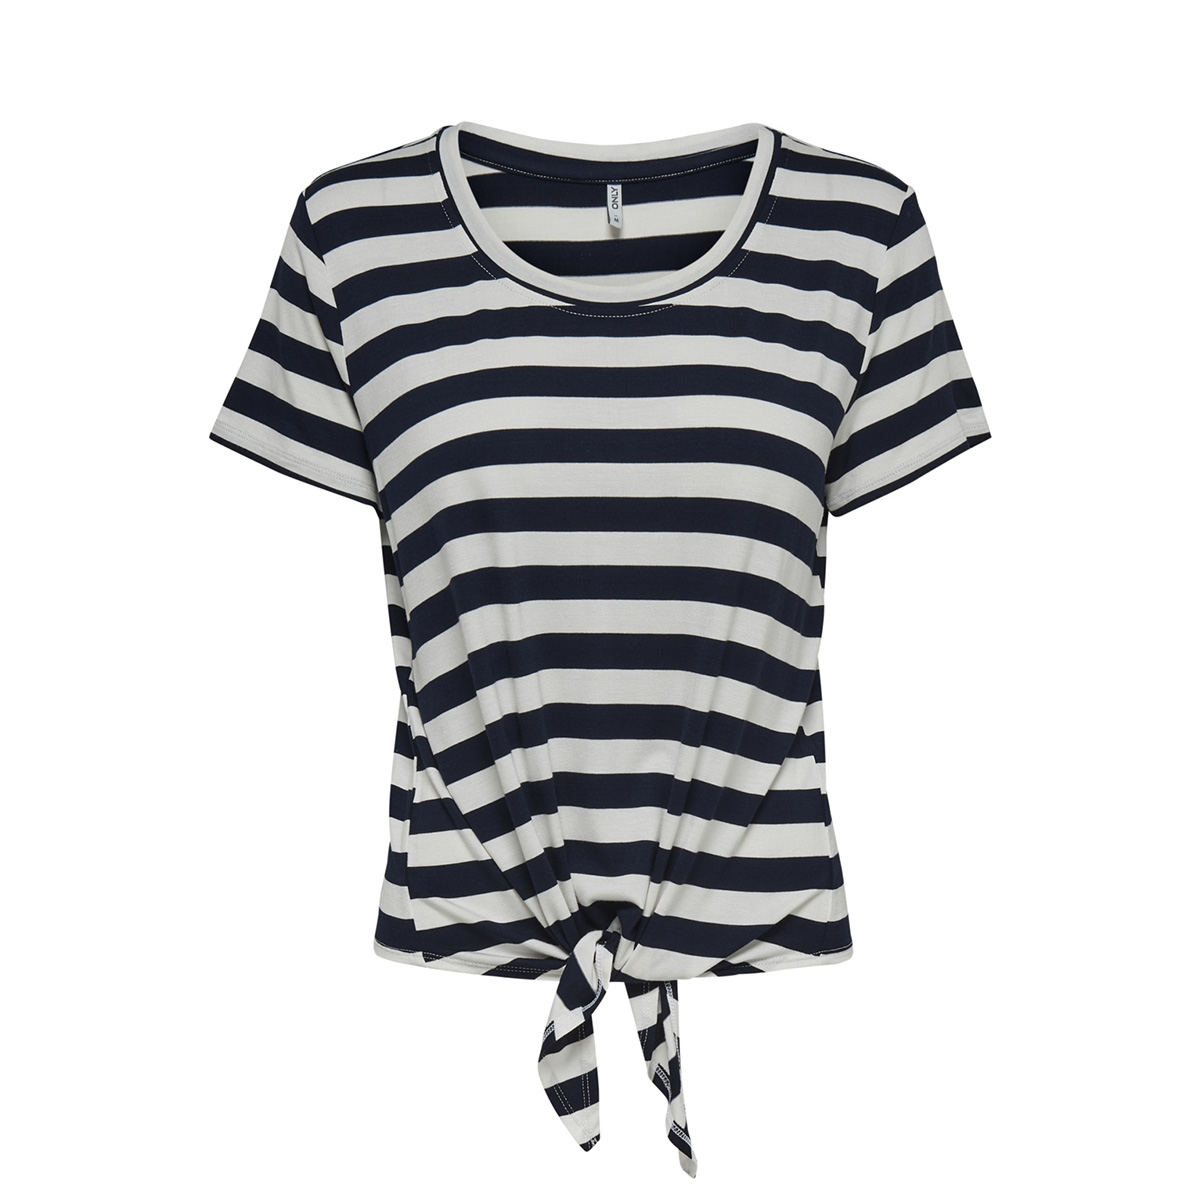 onlarli s/s knot top jrs noos 15178088 only t-shirt cloud dancer/night sky